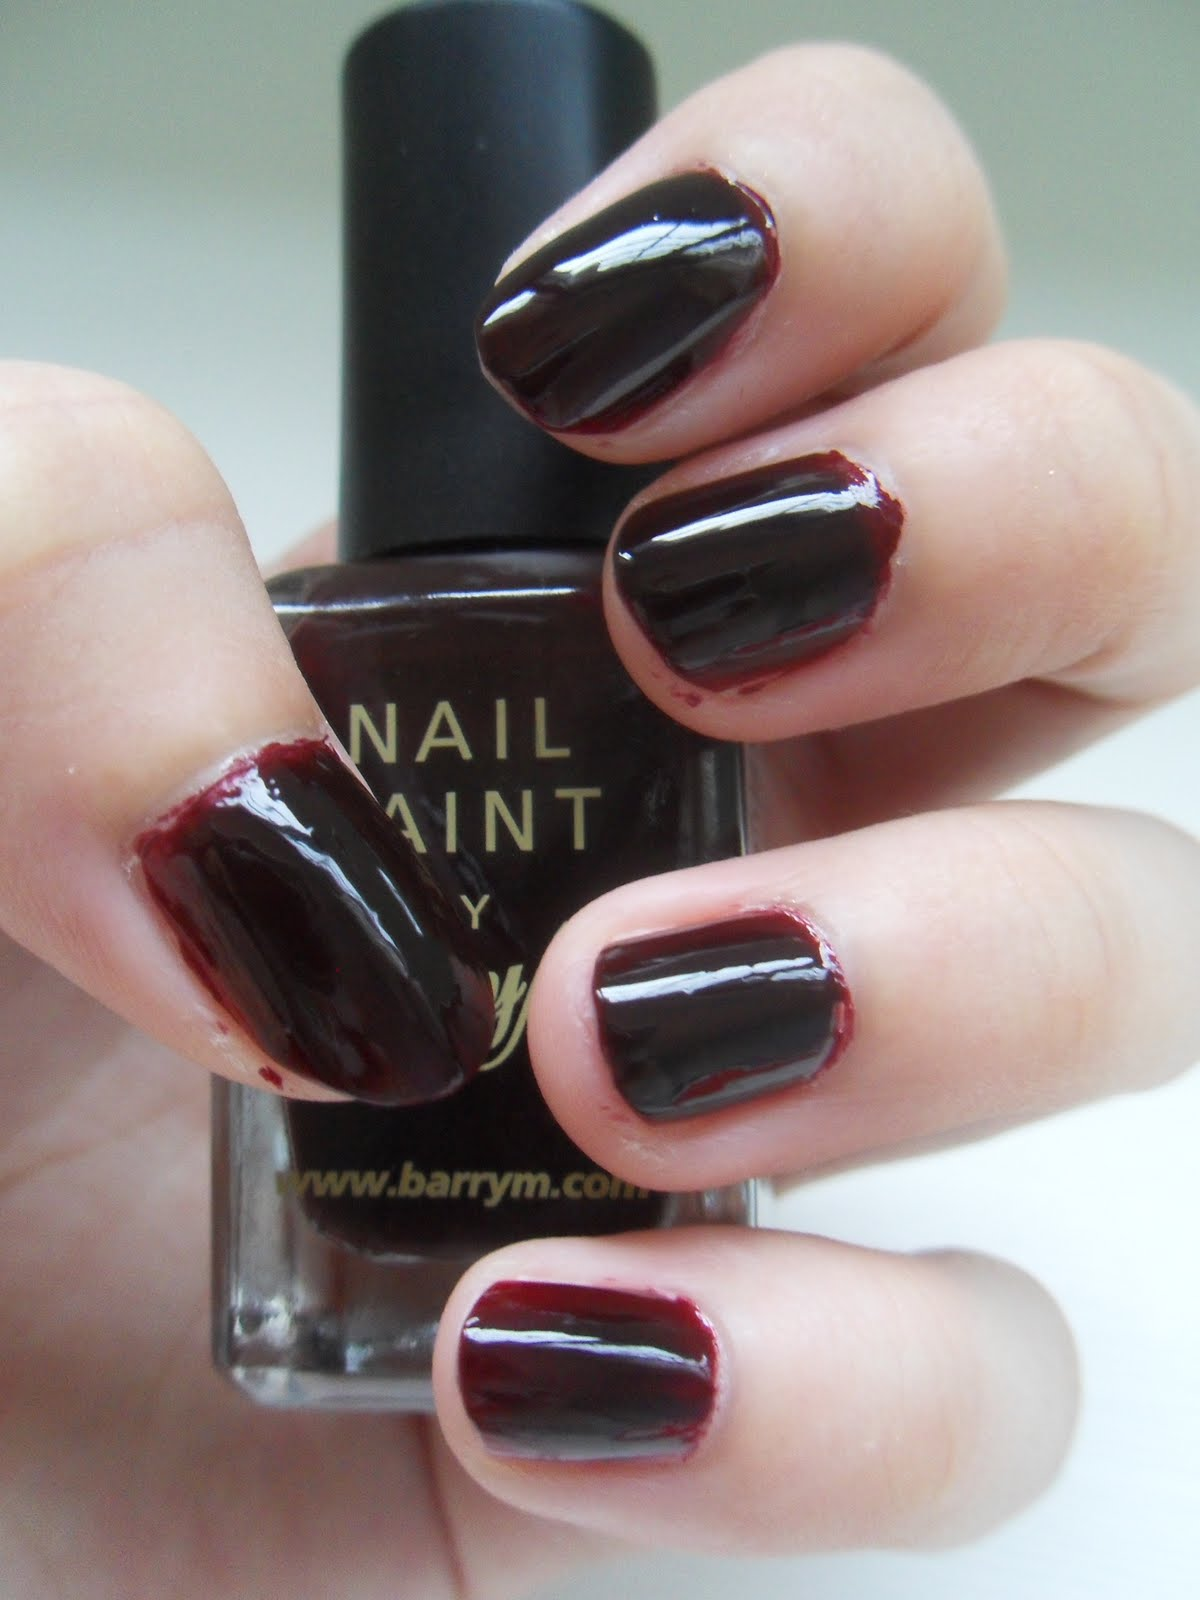 NAILS: Barry M\'s Nail Paint 115, Red Black | xoxo, charlene